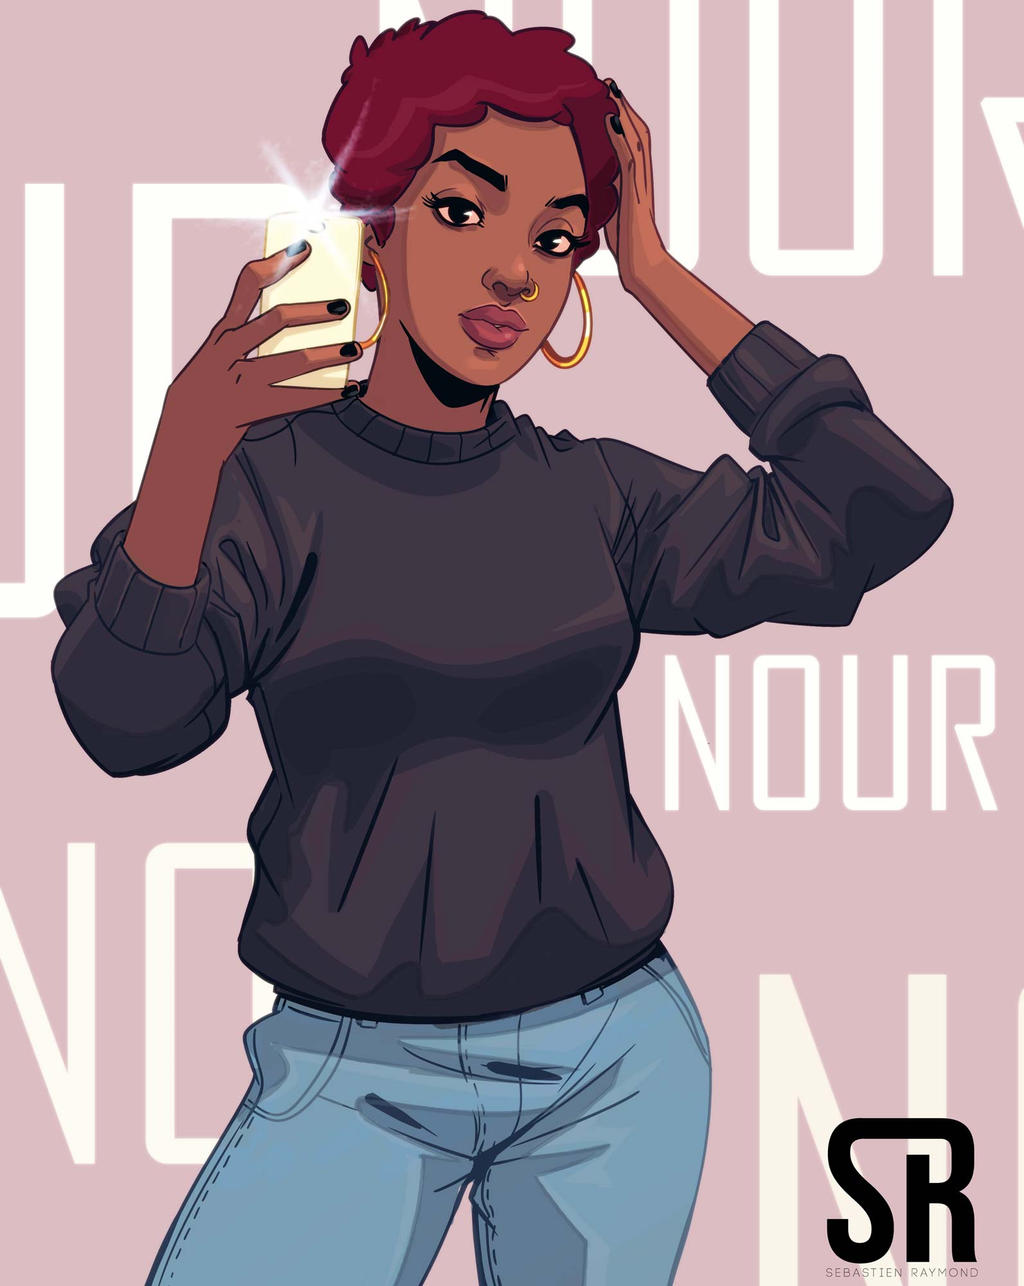 Nour by Messiah972